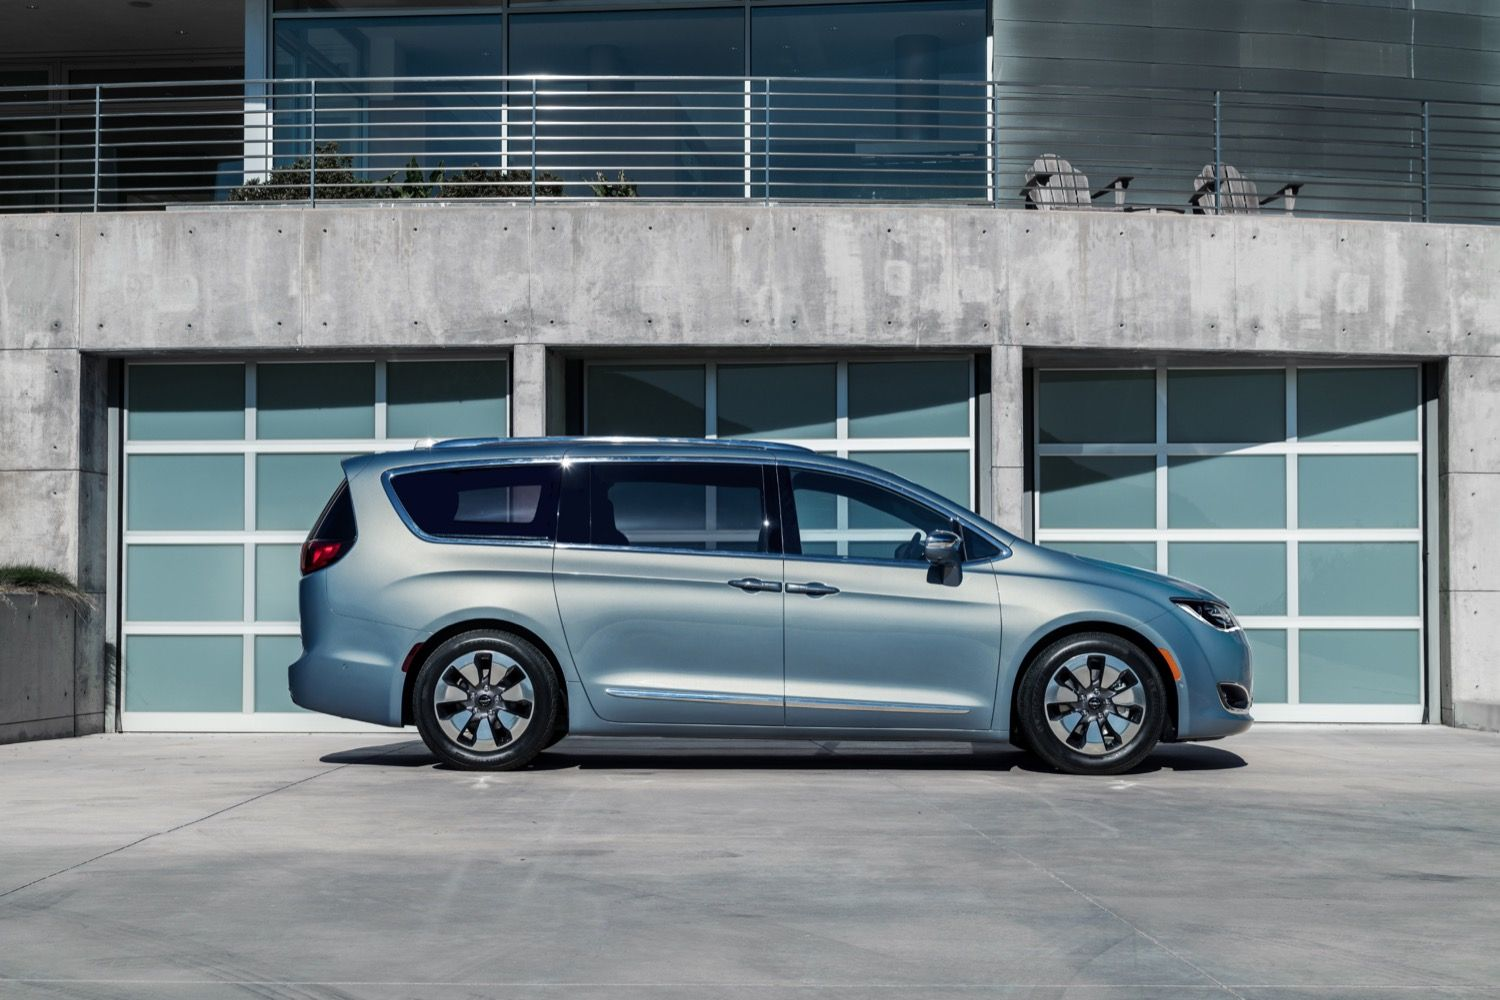 2018 Chrysler Pacifica Hybrid Release Date